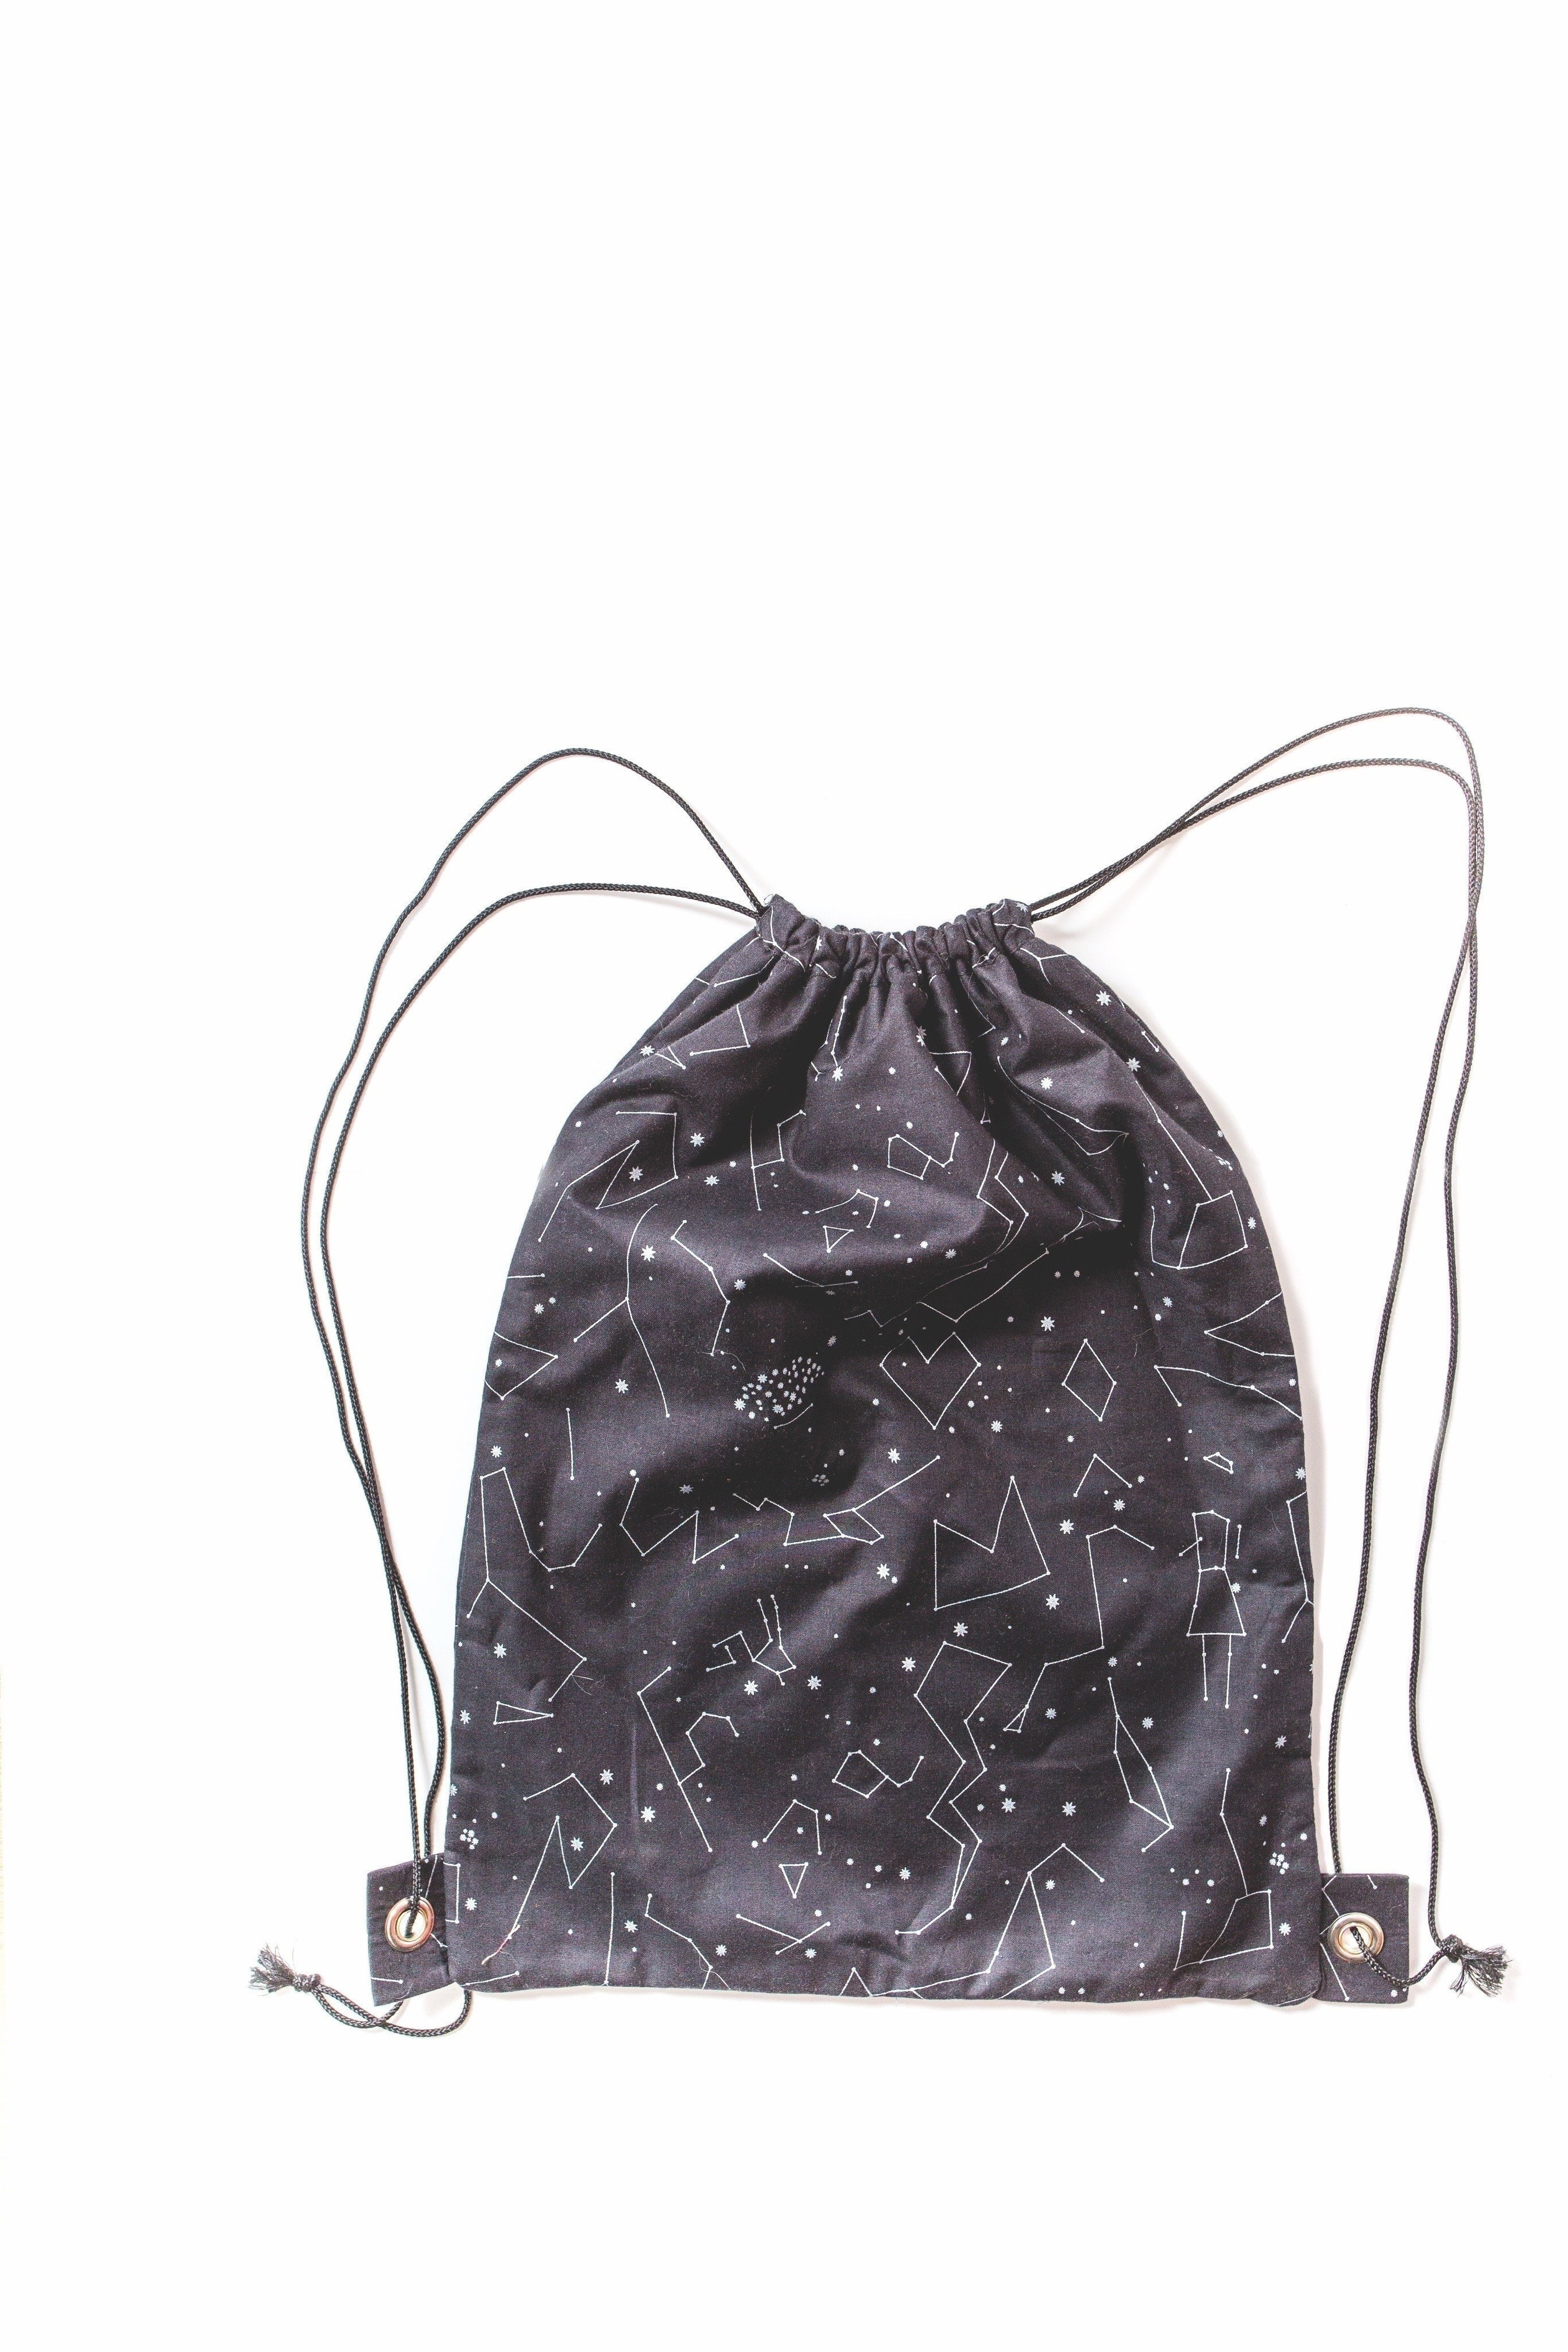 Drawstring Backpack Extract From Hack That Tote By Mary Abreu How To Make A Backpack